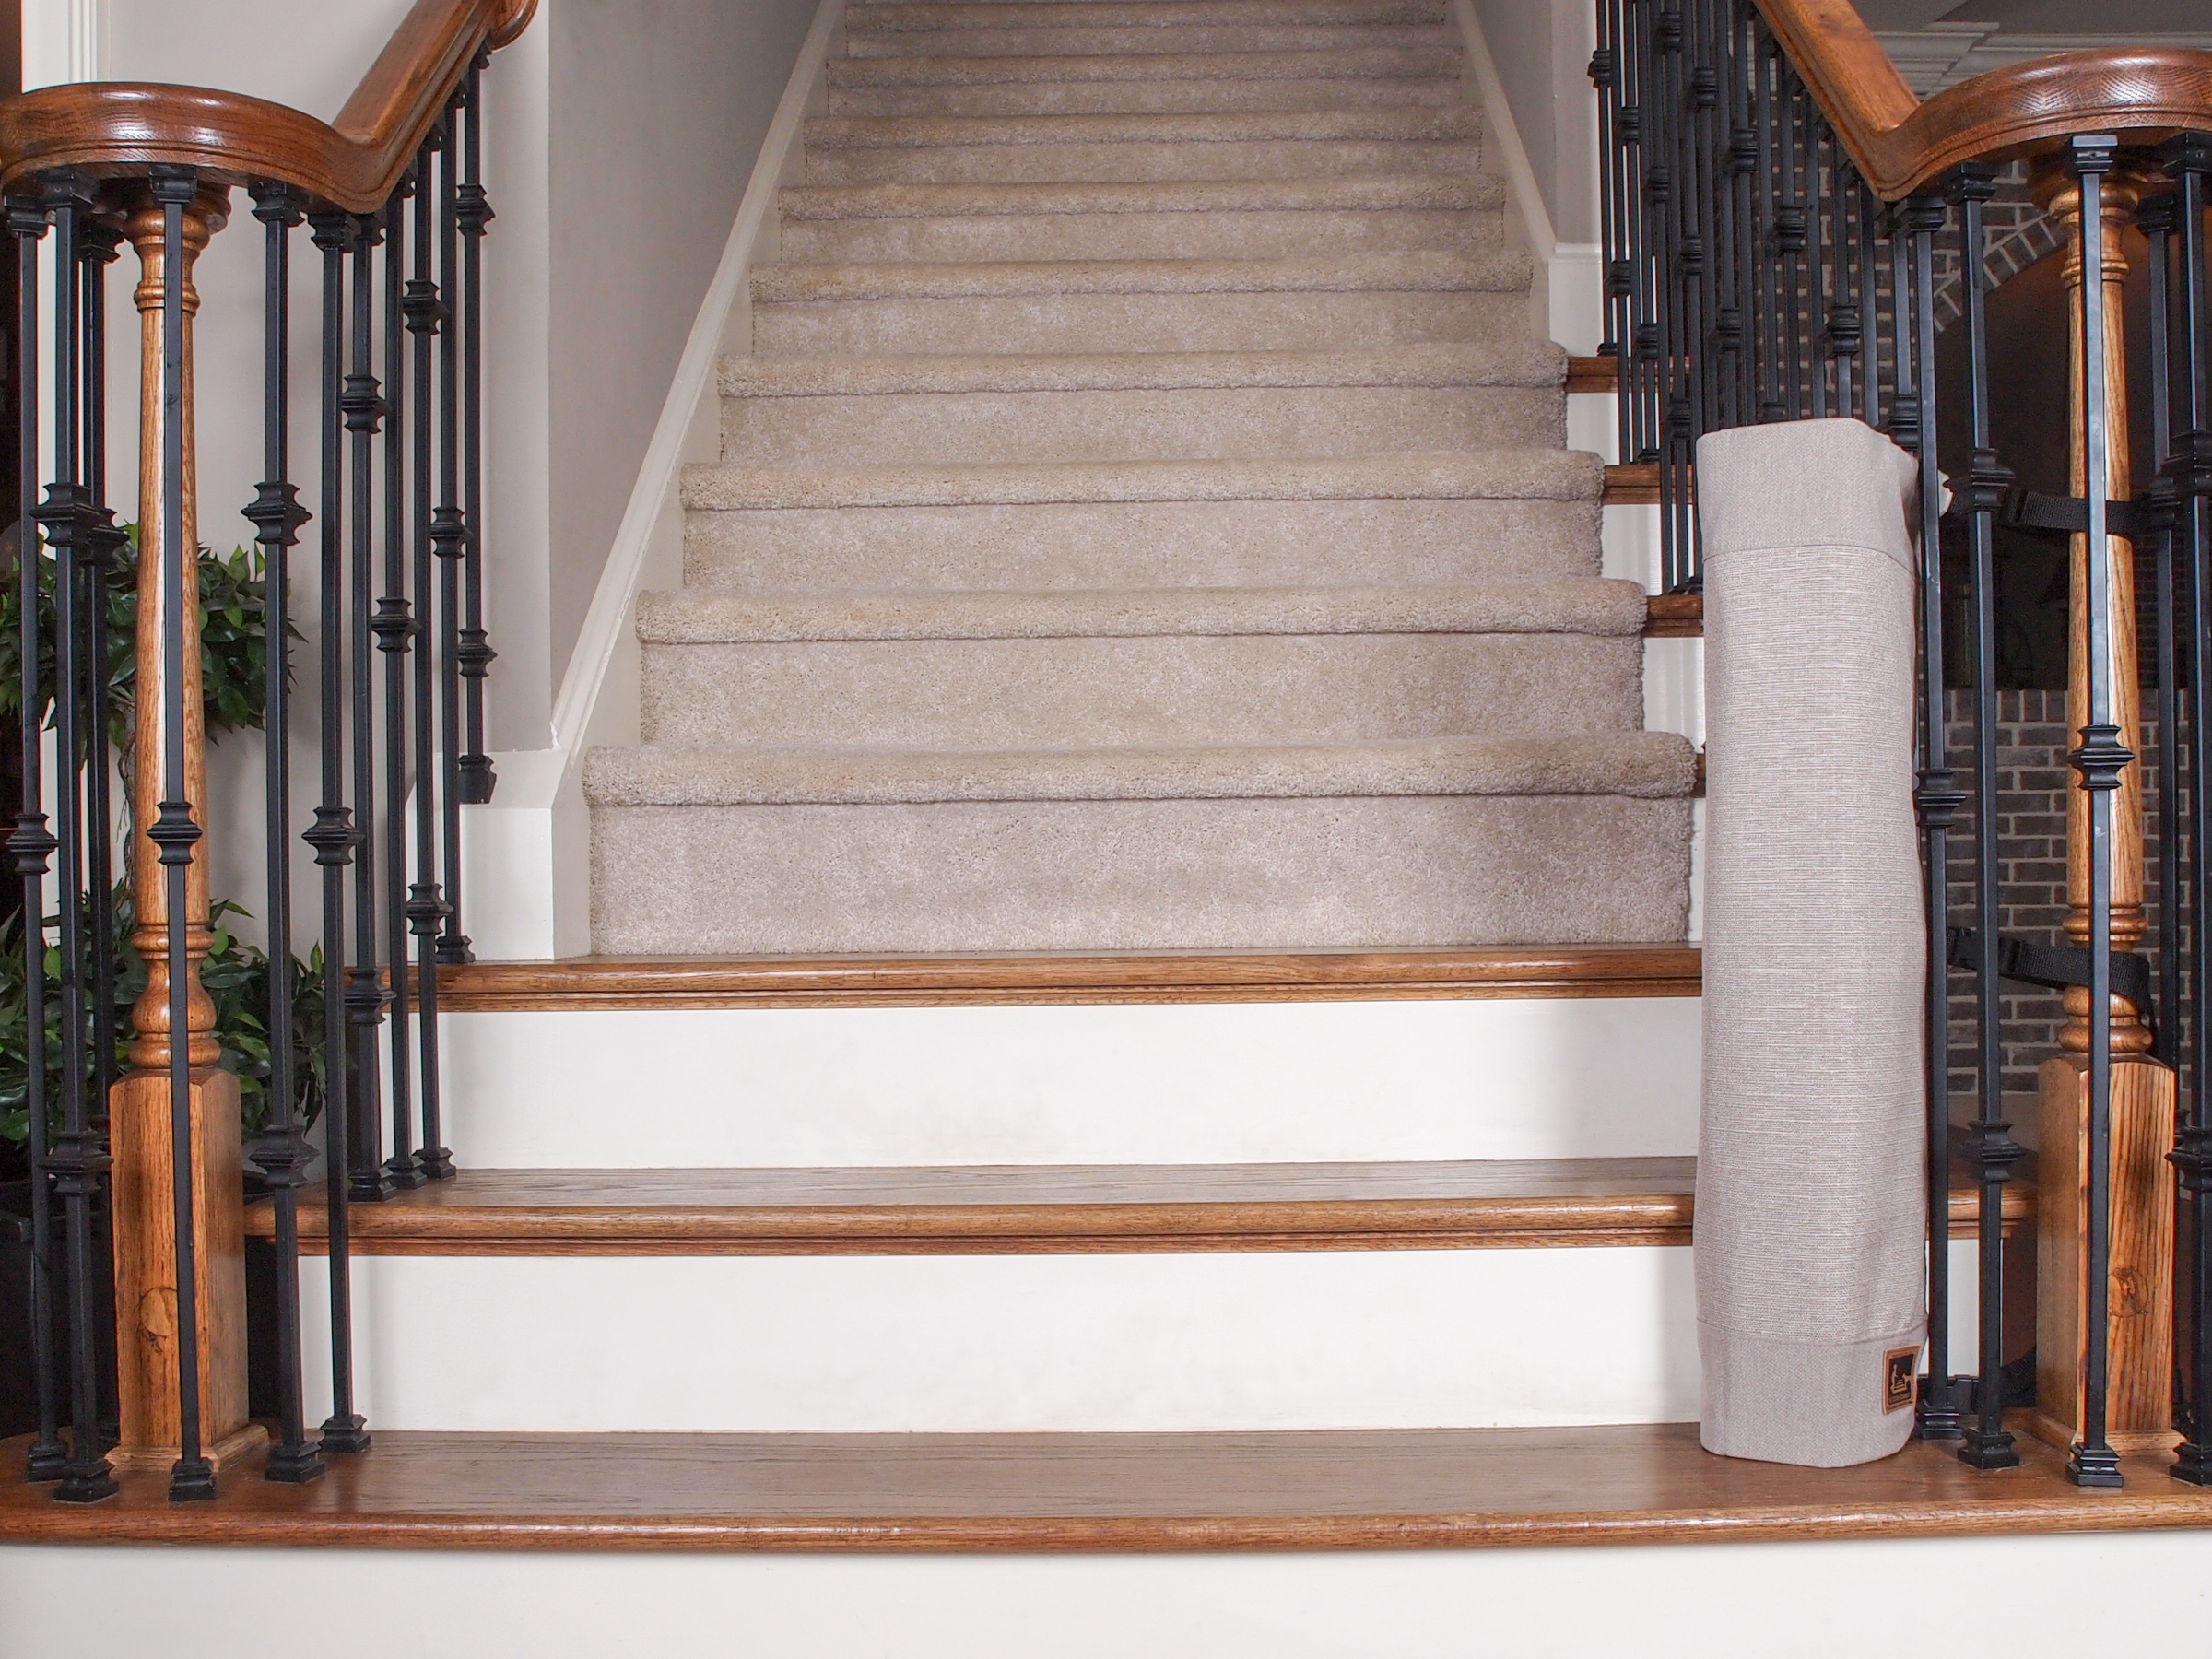 The Stair Barrier Quot Banister To Banister Quot Baby Safety Gate